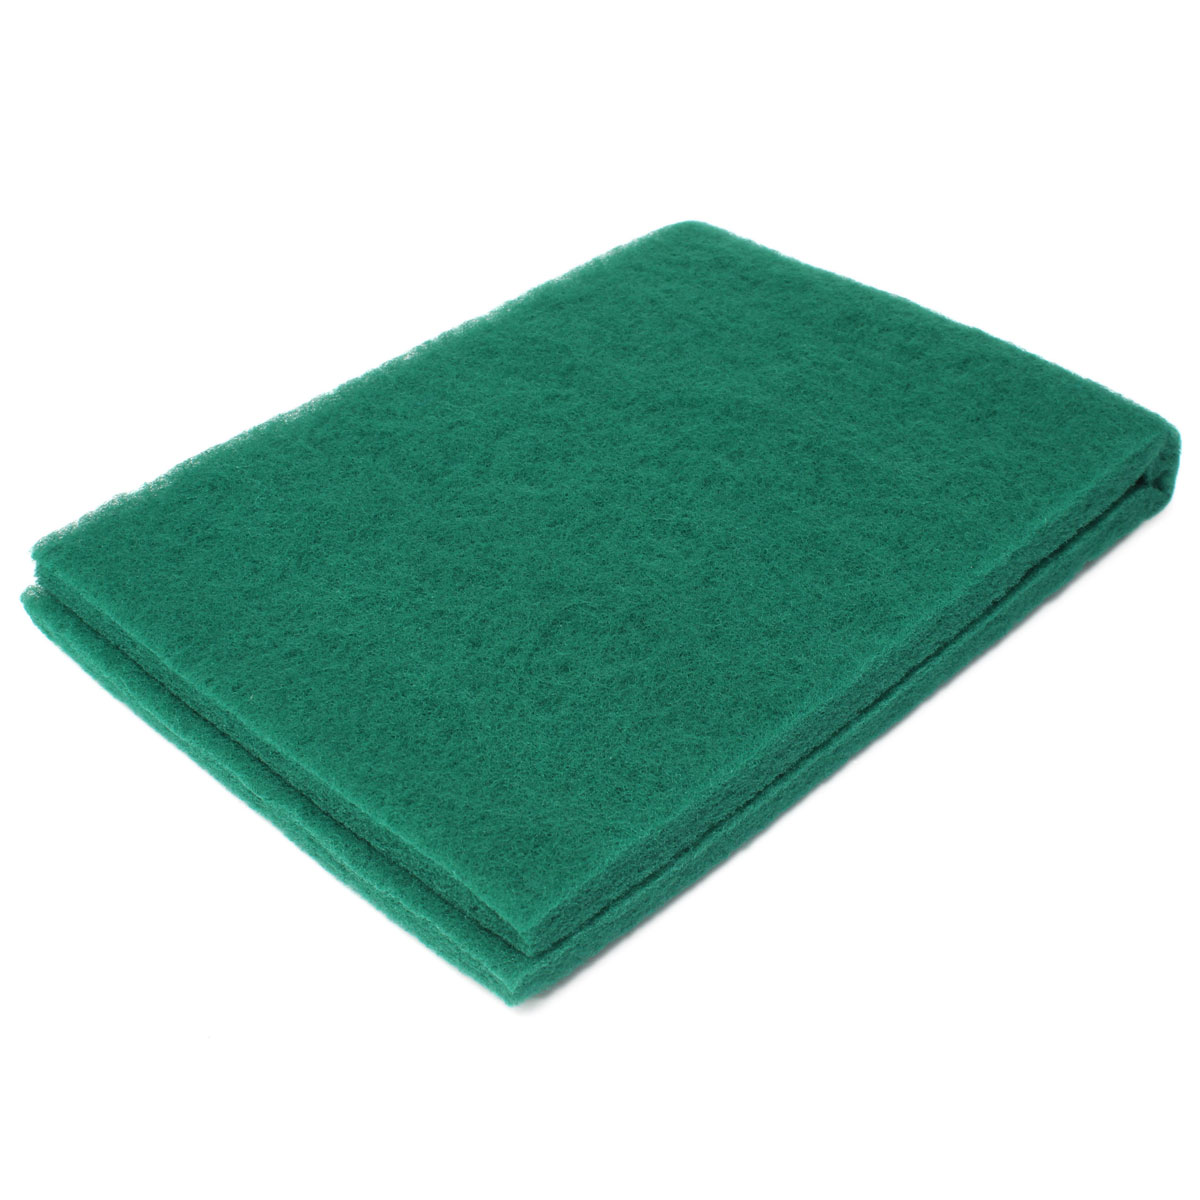 Biochemical cotton filter foam sponge aquarium fish tank for Pond filter sponges